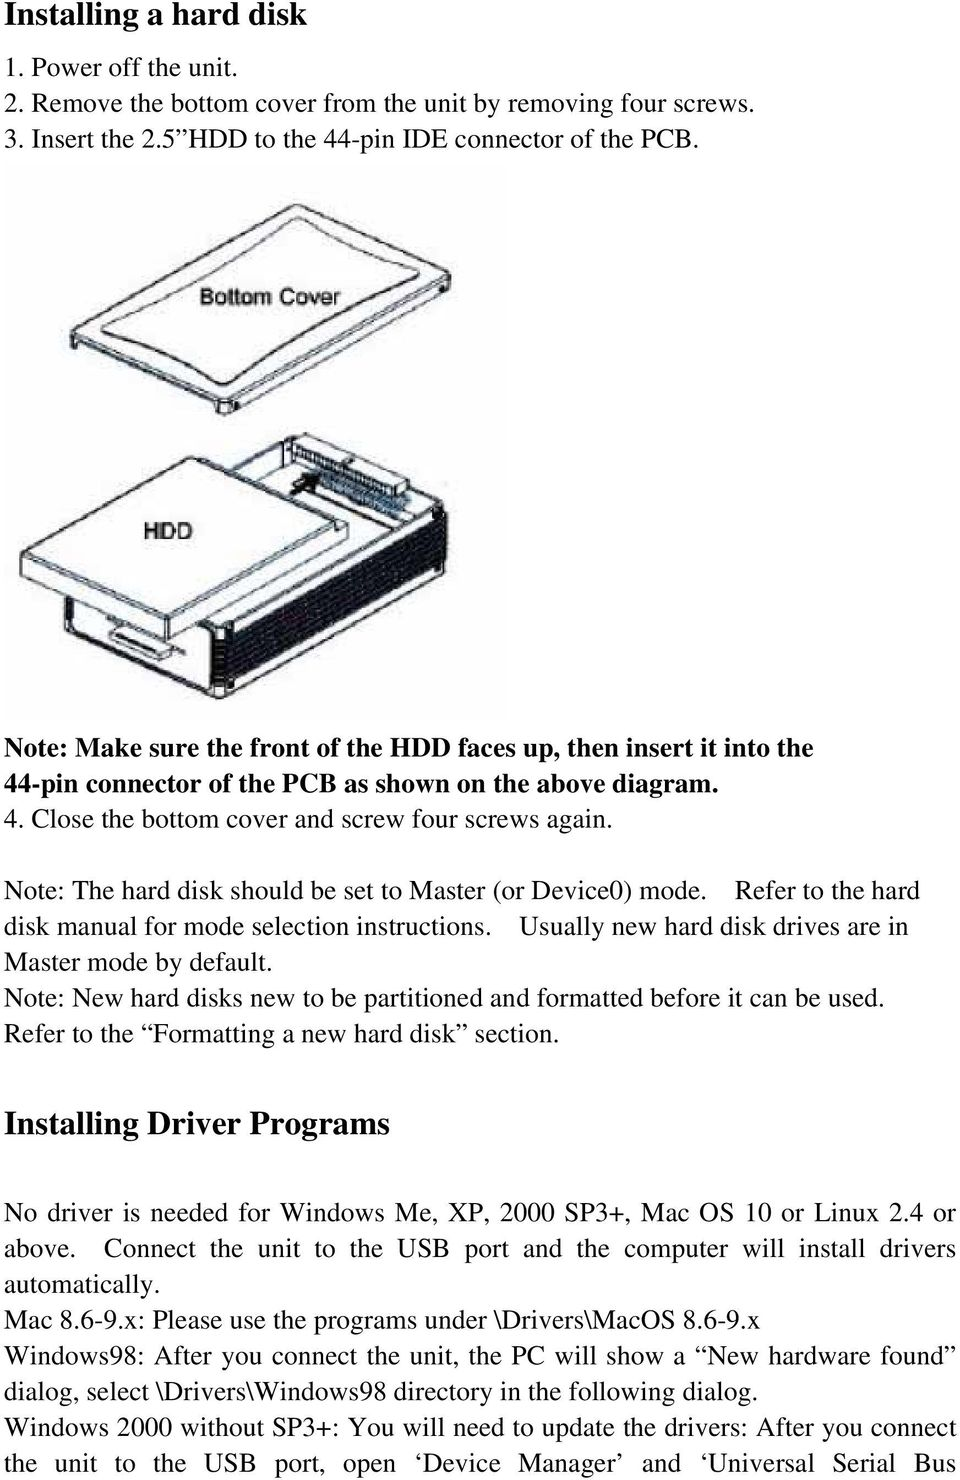 Note: The hard disk should be set to Master (or Device0) mode. Refer to the hard disk manual for mode selection instructions. Usually new hard disk drives are in Master mode by default.